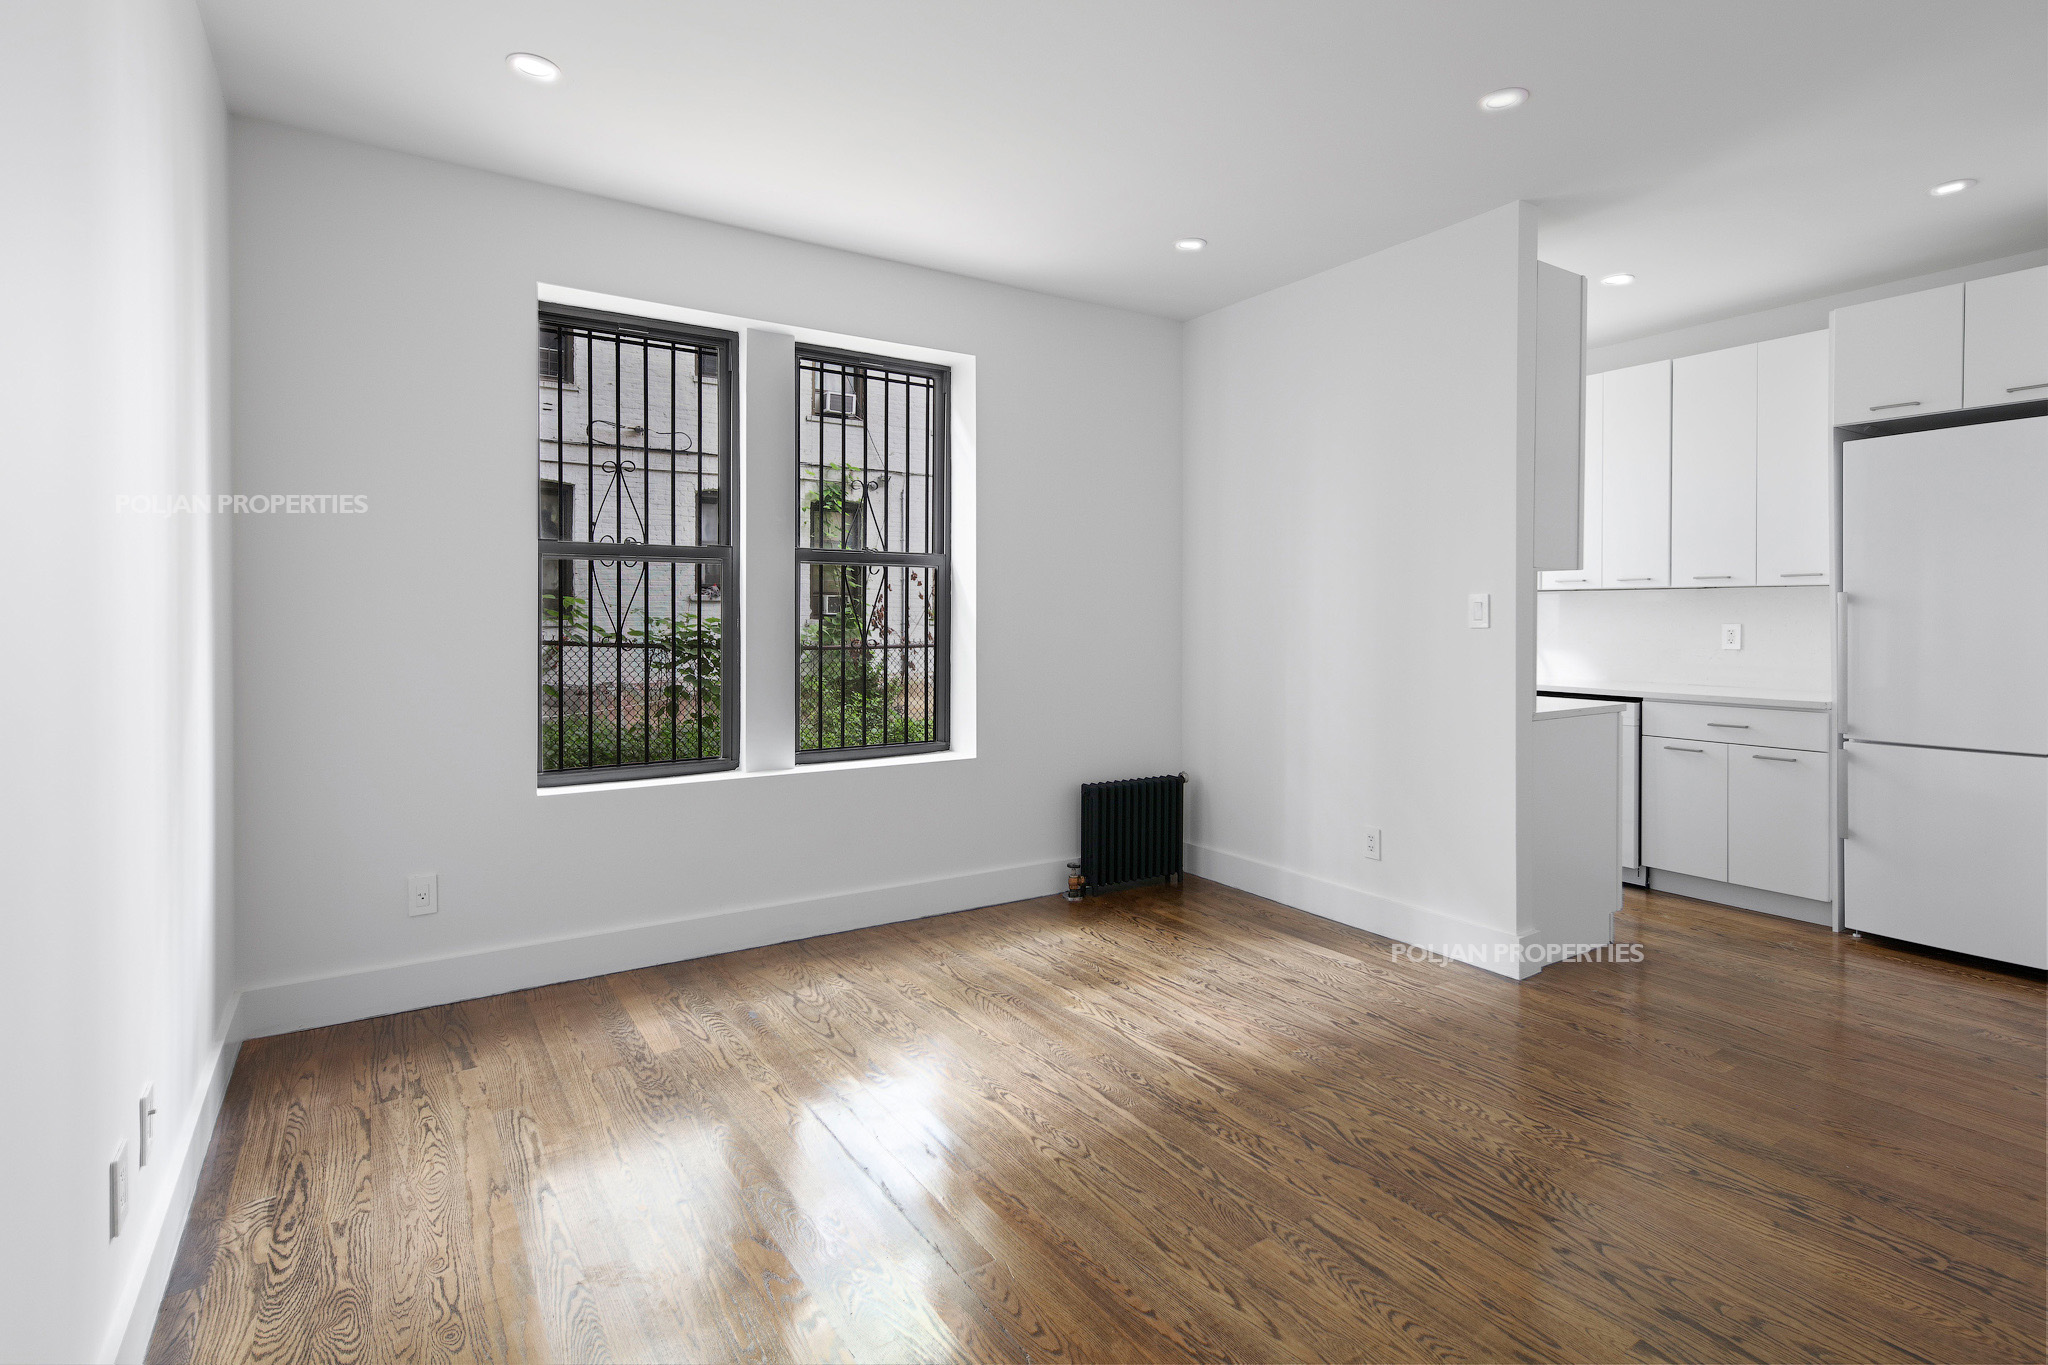 IN CONTRACT:  35 Clarkson Ave - Lefferts Gardens